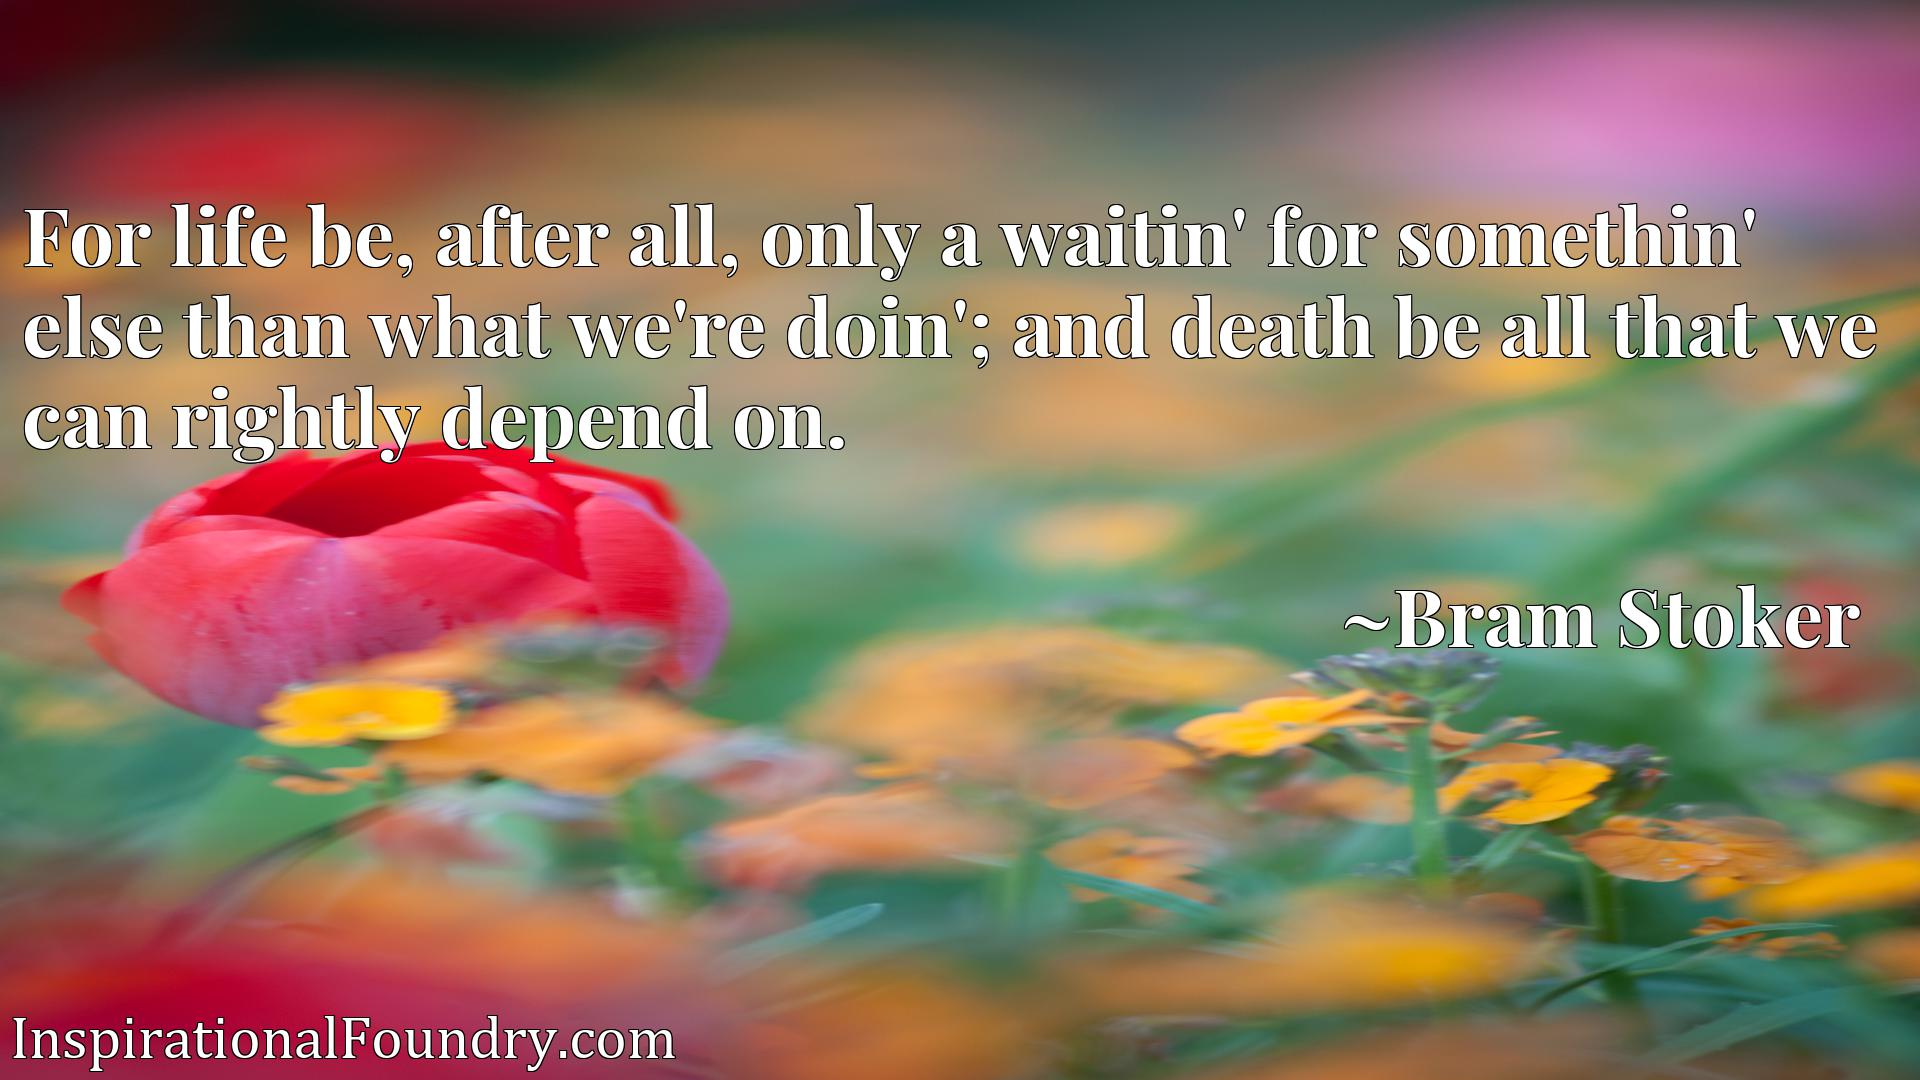 Quote Picture :For life be, after all, only a waitin' for somethin' else than what we're doin'; and death be all that we can rightly depend on.